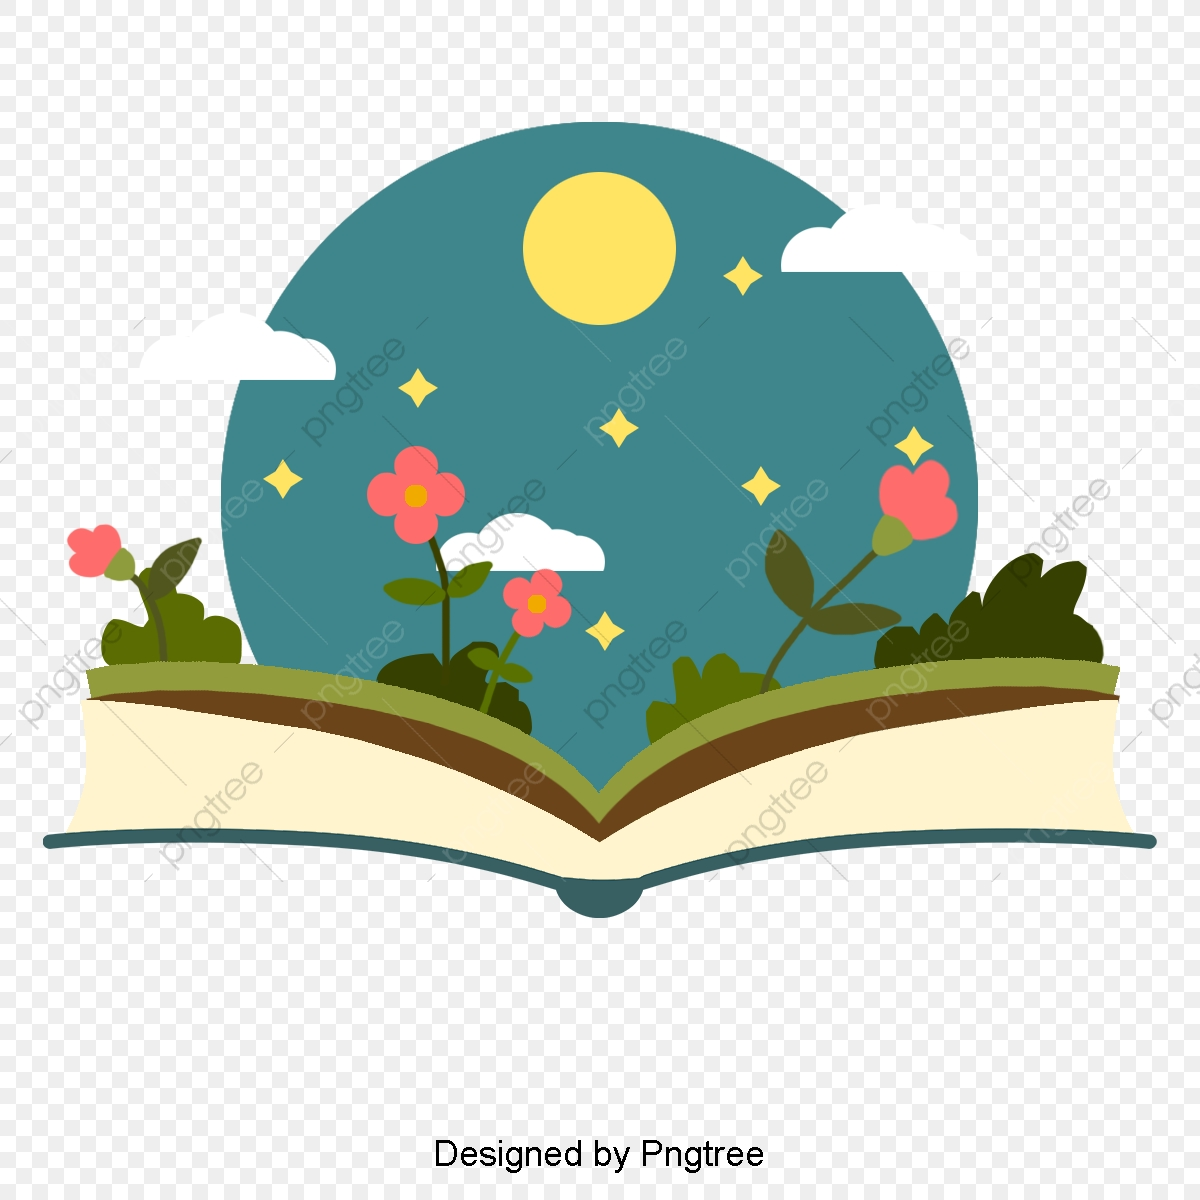 pngtree-cartoon-simple-book-design-png-image_3600070.jpg (1200×1200)